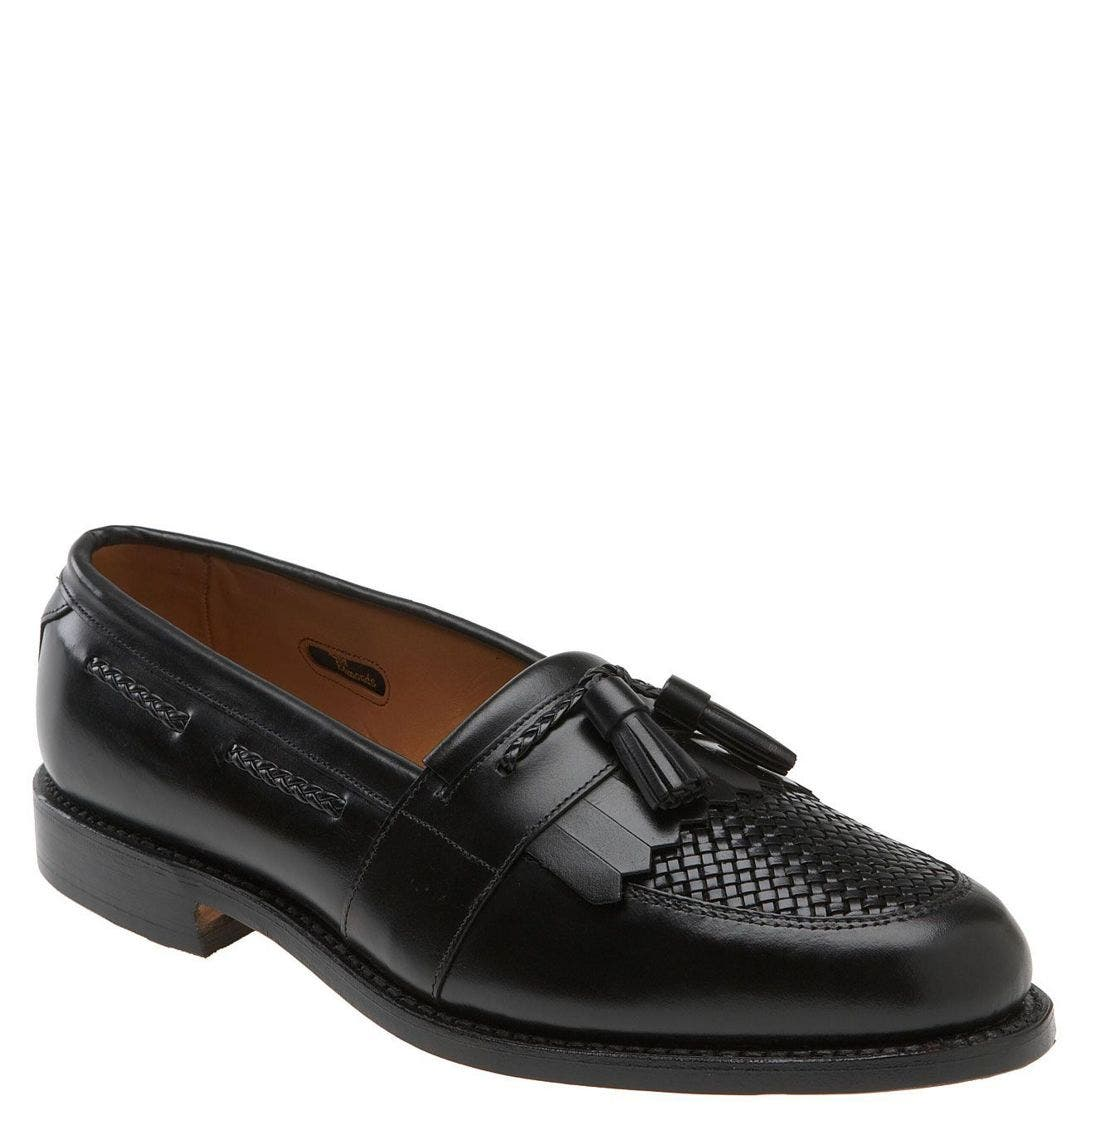 Alternate Image 1 Selected - Allen Edmonds 'Cody' Tassel Loafer (Men)